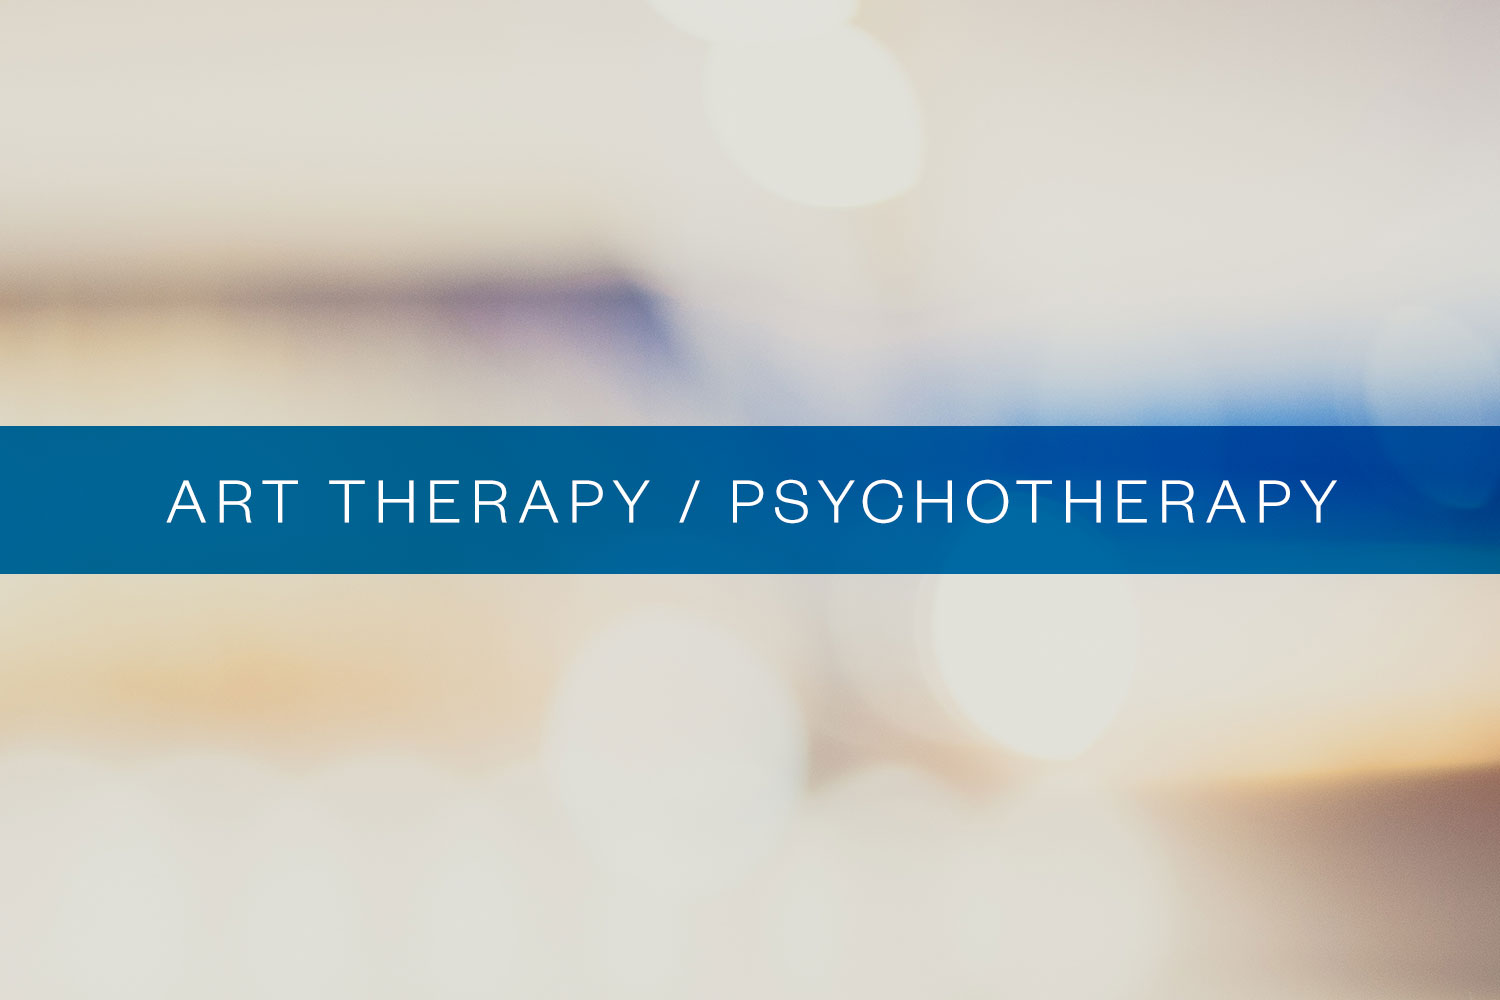 Art Therapy / Psychotherapy